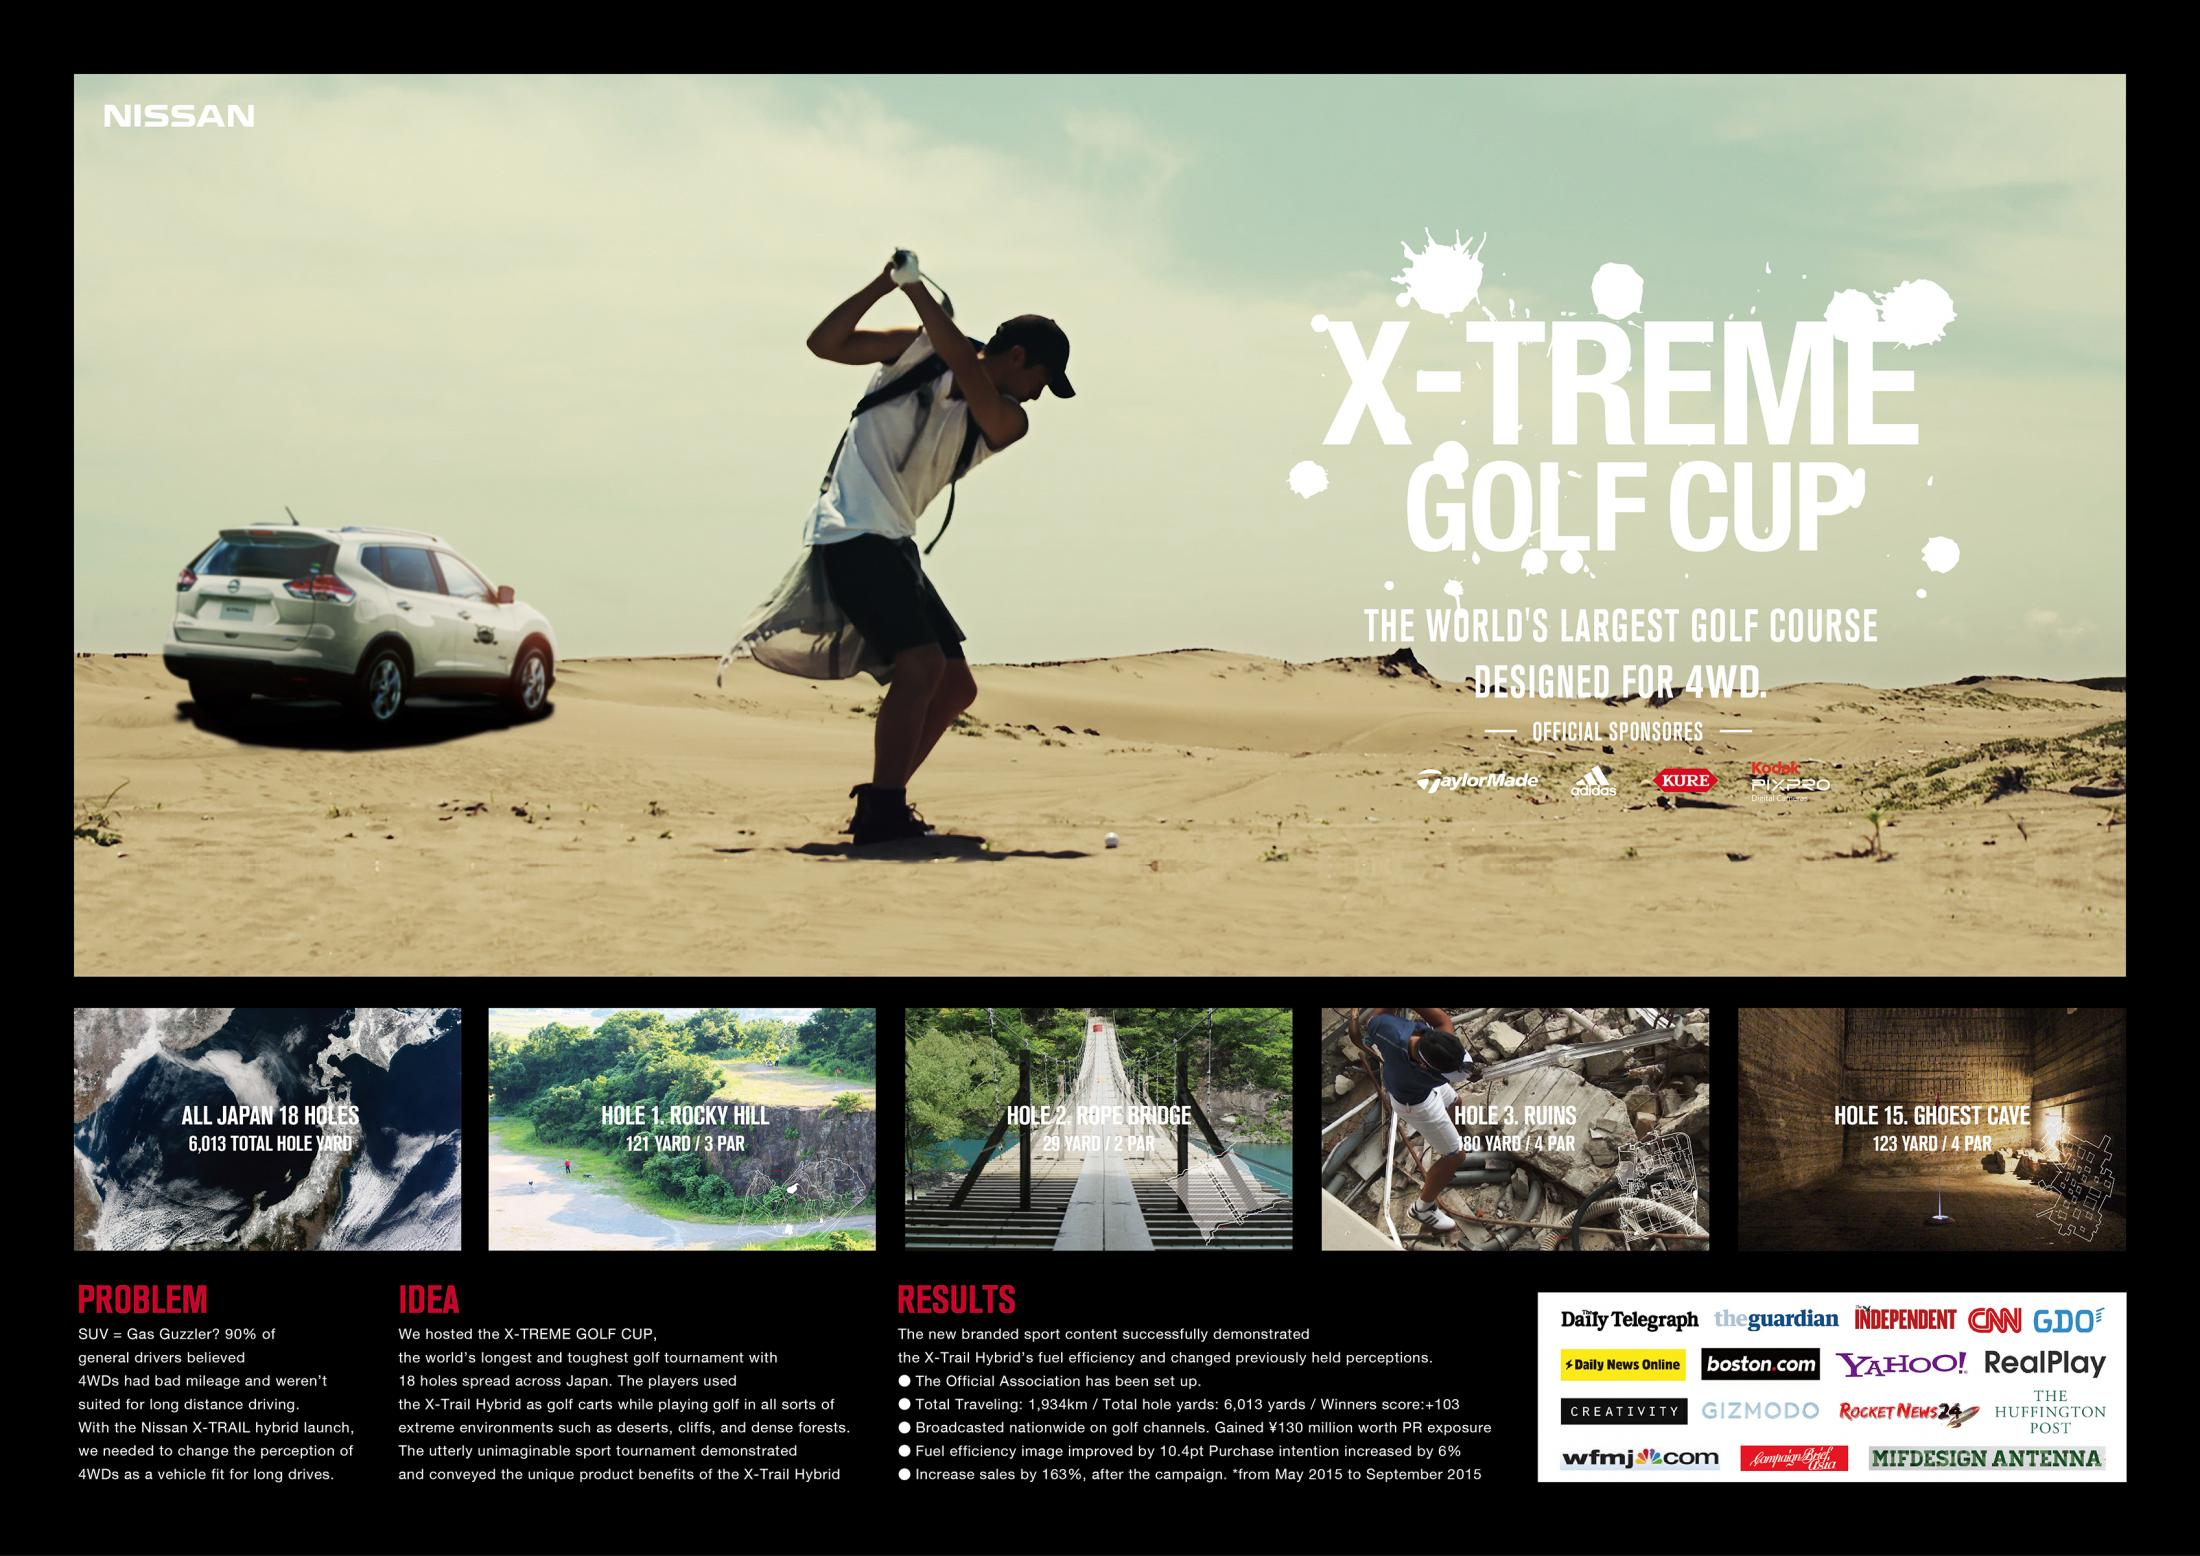 Thumbnail for X-treme Golf Cup